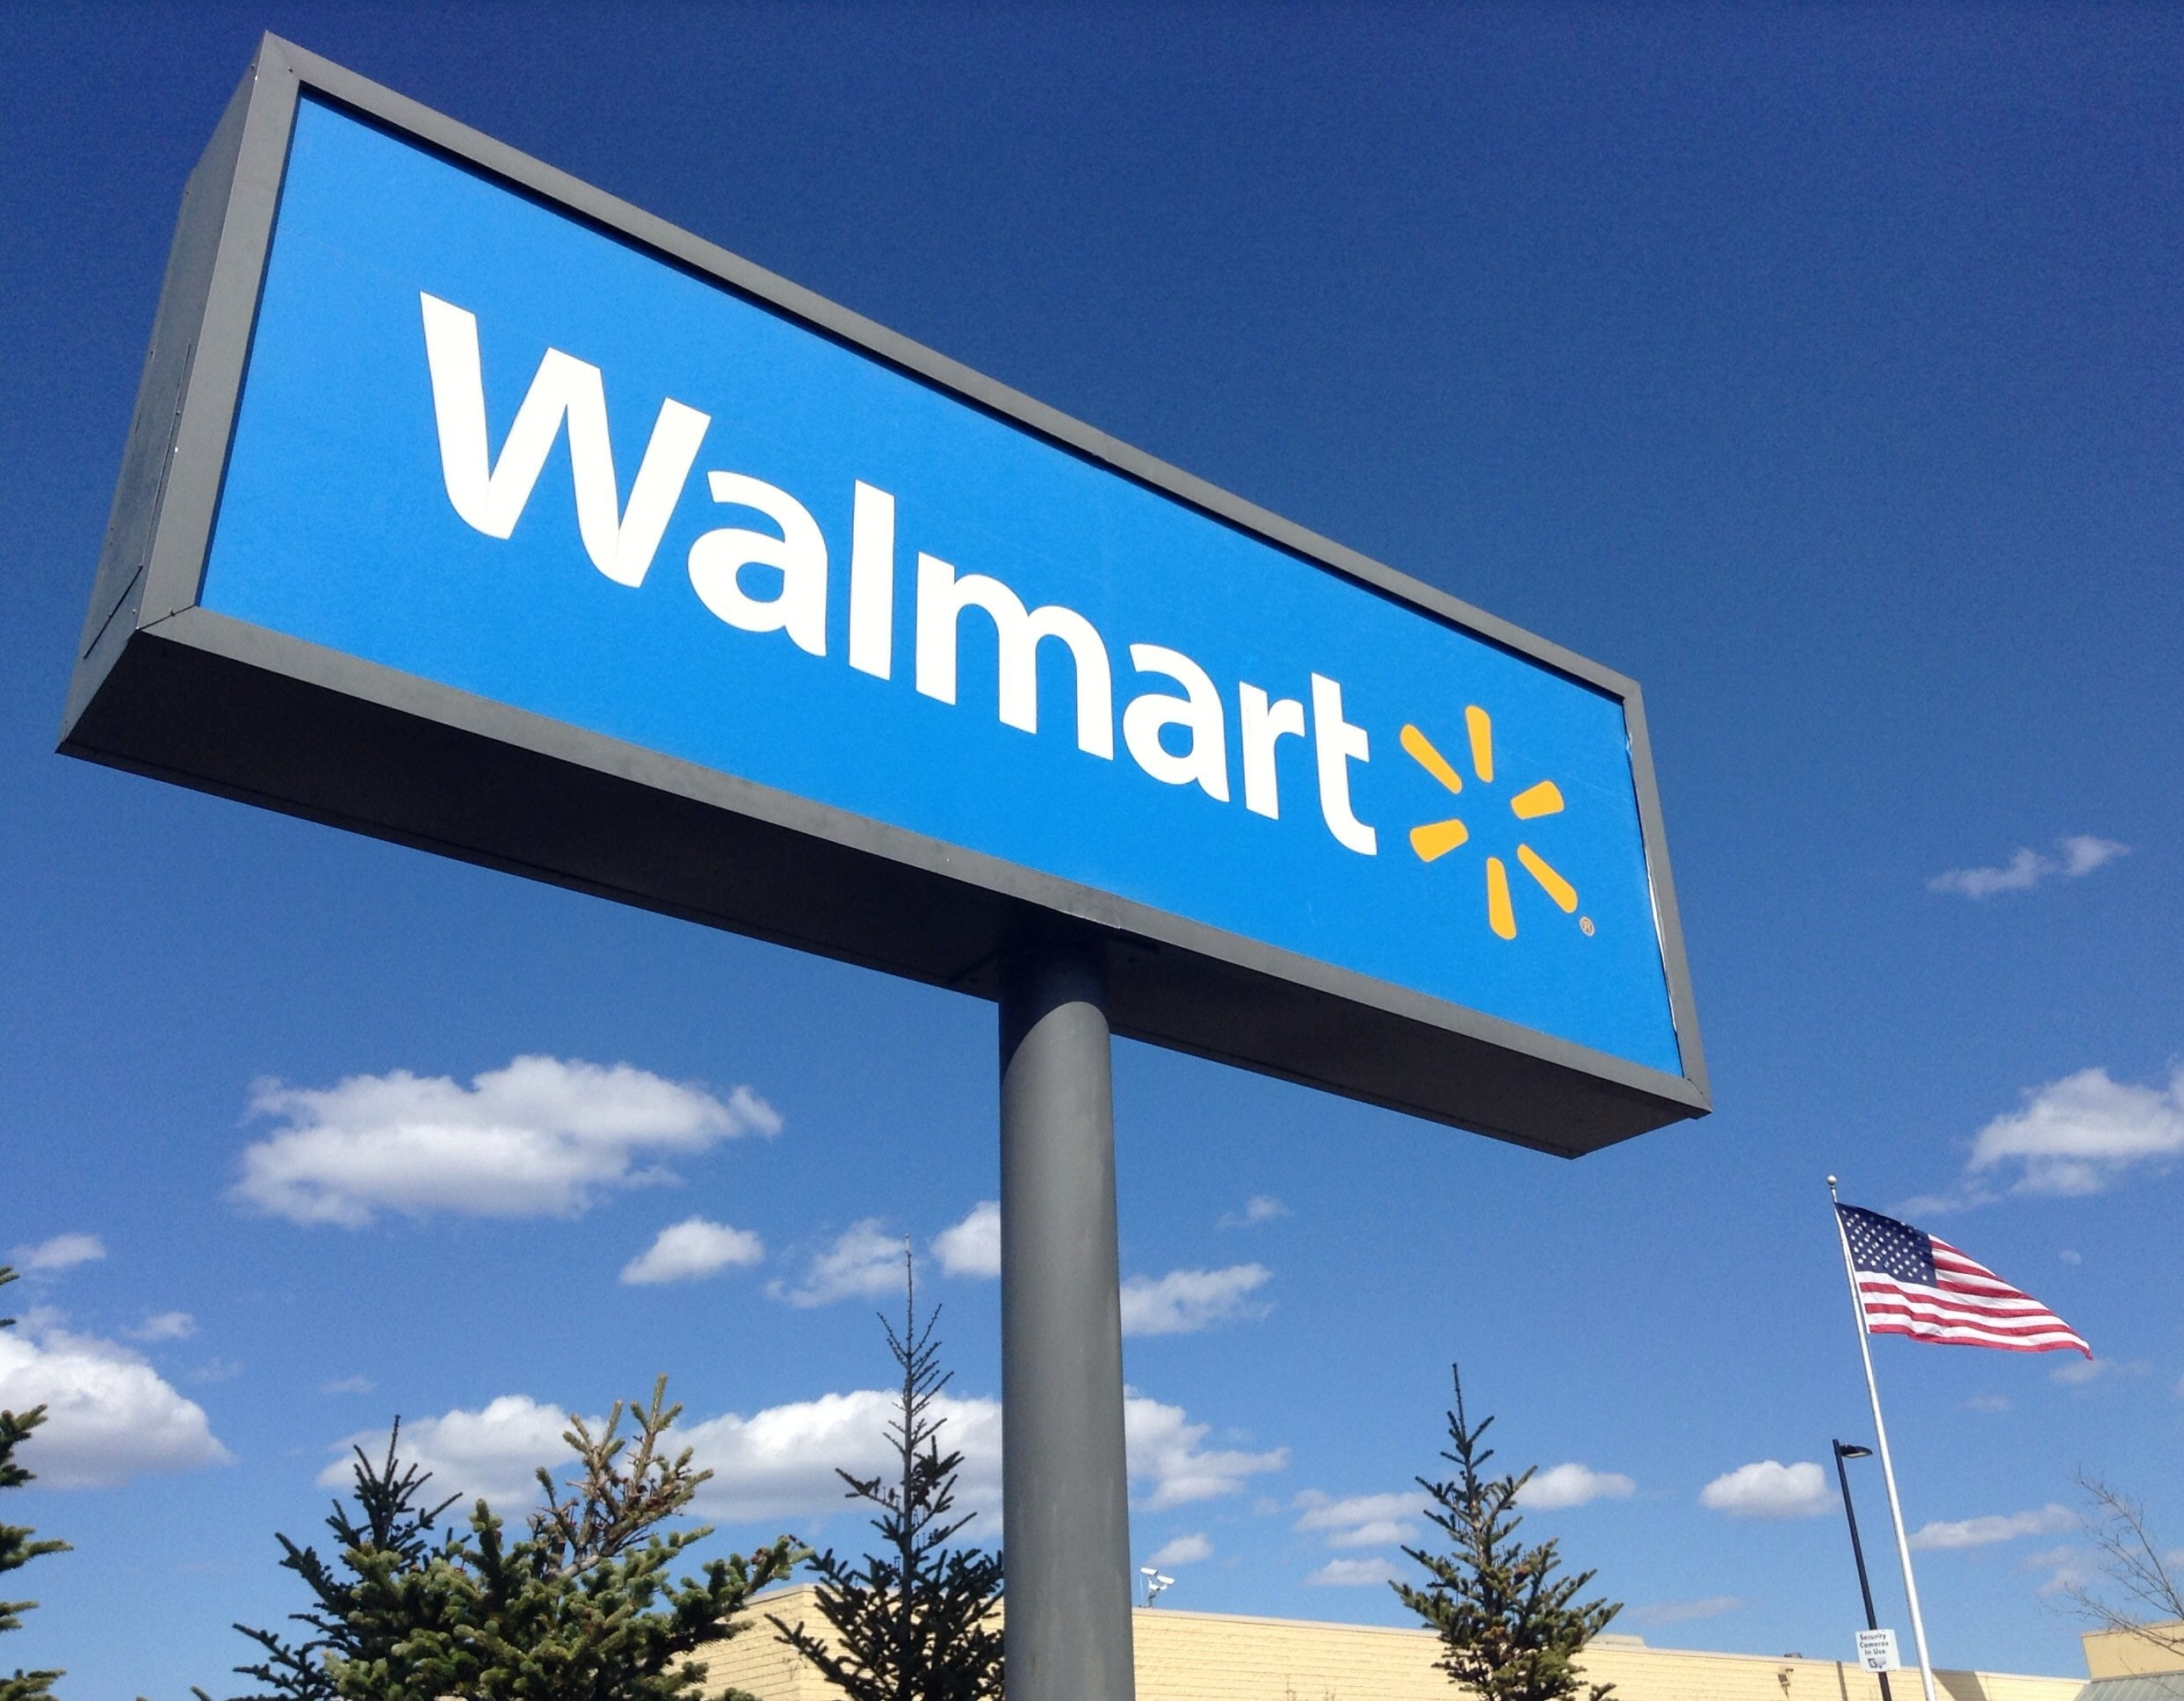 Walmart Store sign uploaded on April 24, 2014 Photo: Wikimedia